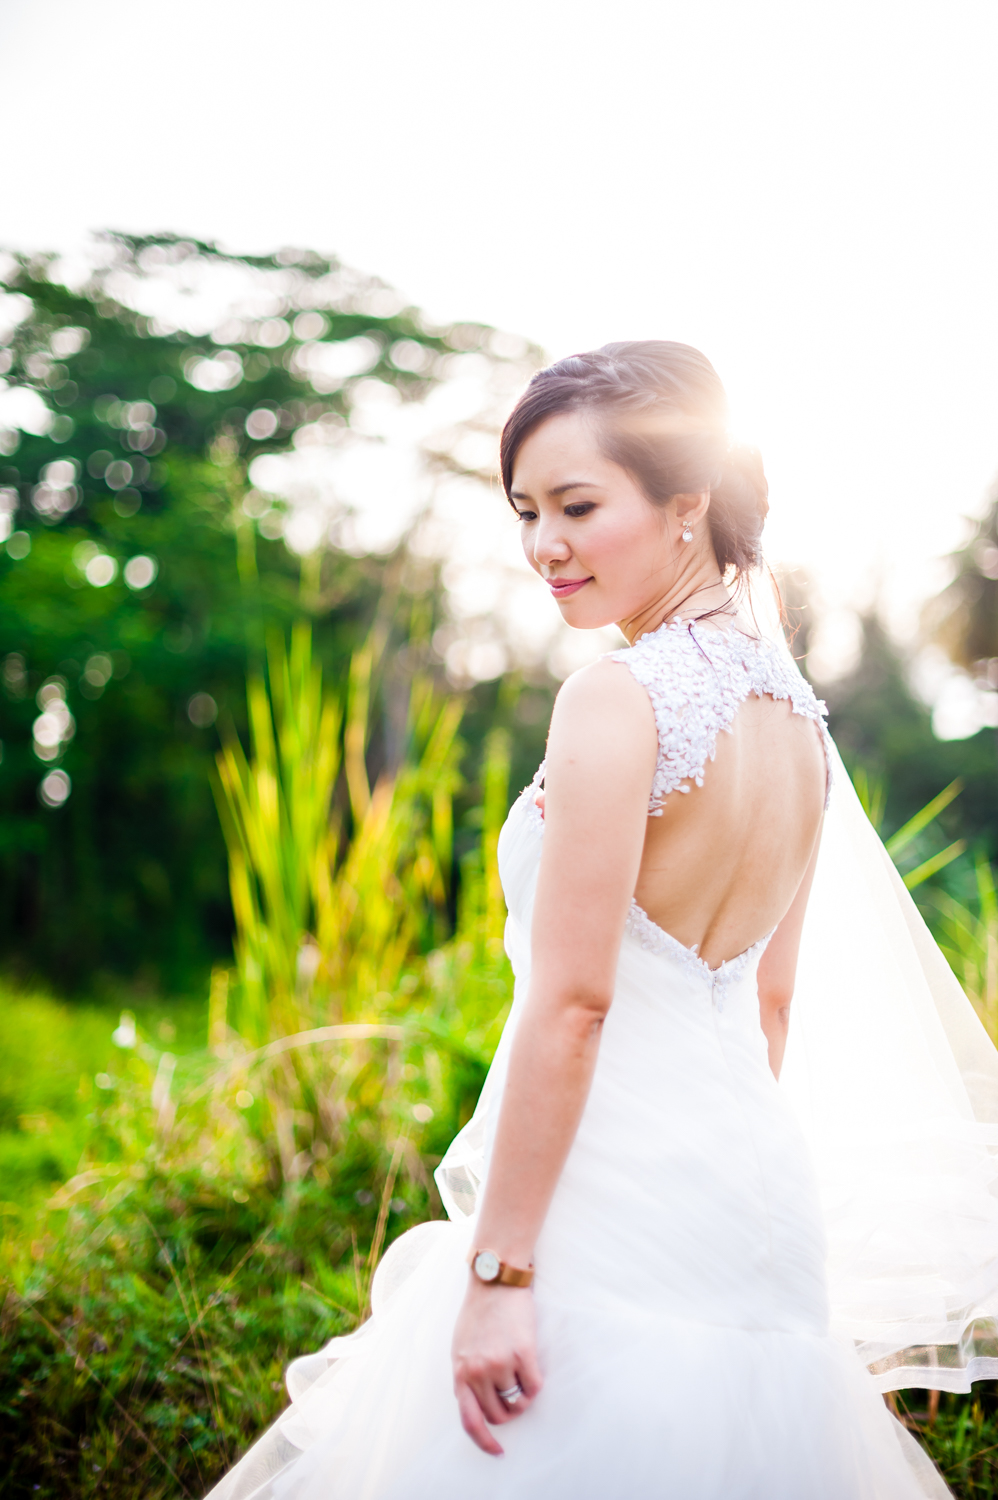 wedding-photoshoot-commonwealth-nature-singapore (6 of 7).jpg